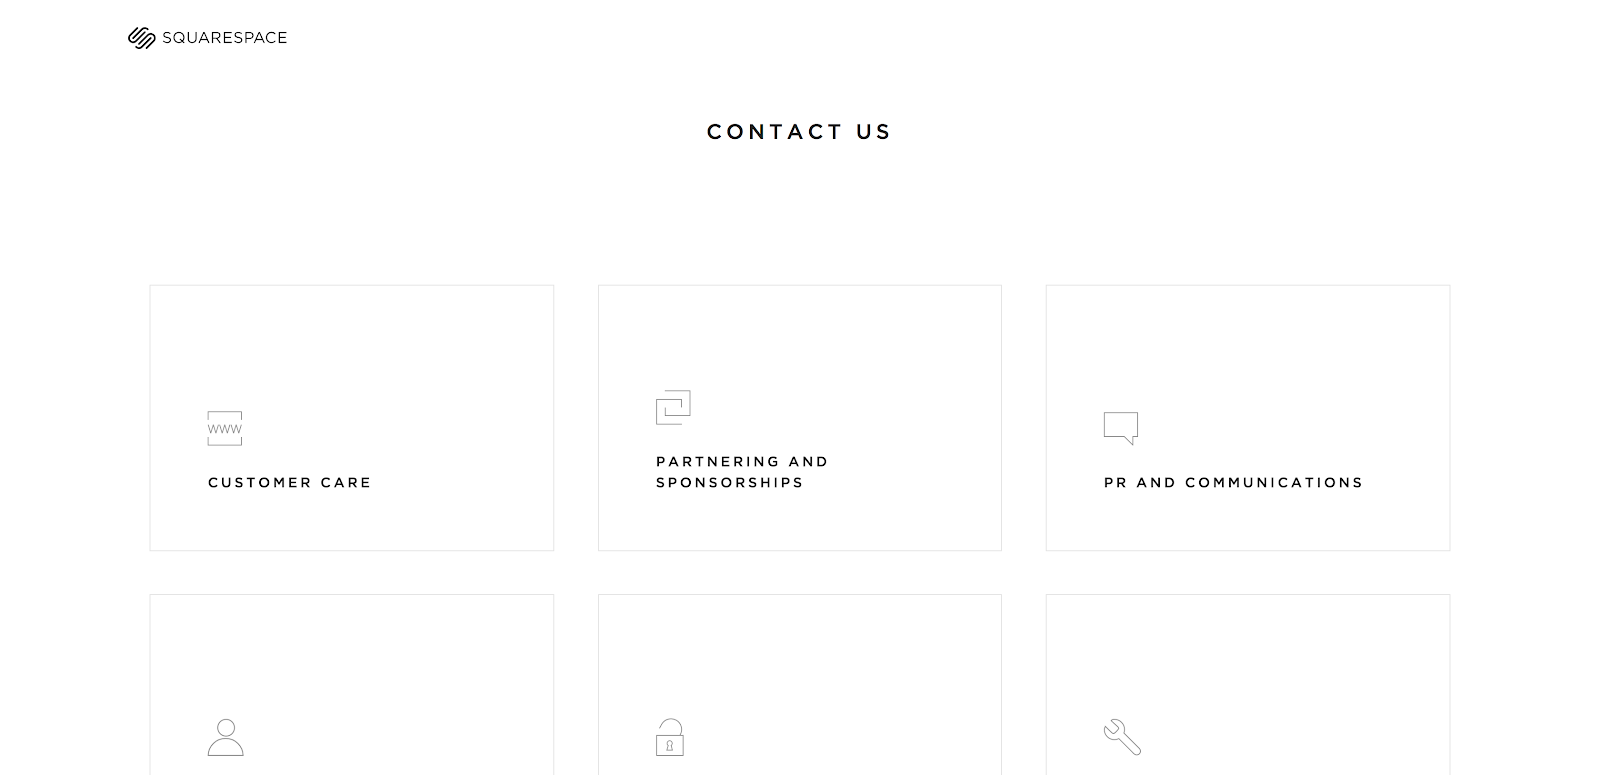 Squarespace Contact Us